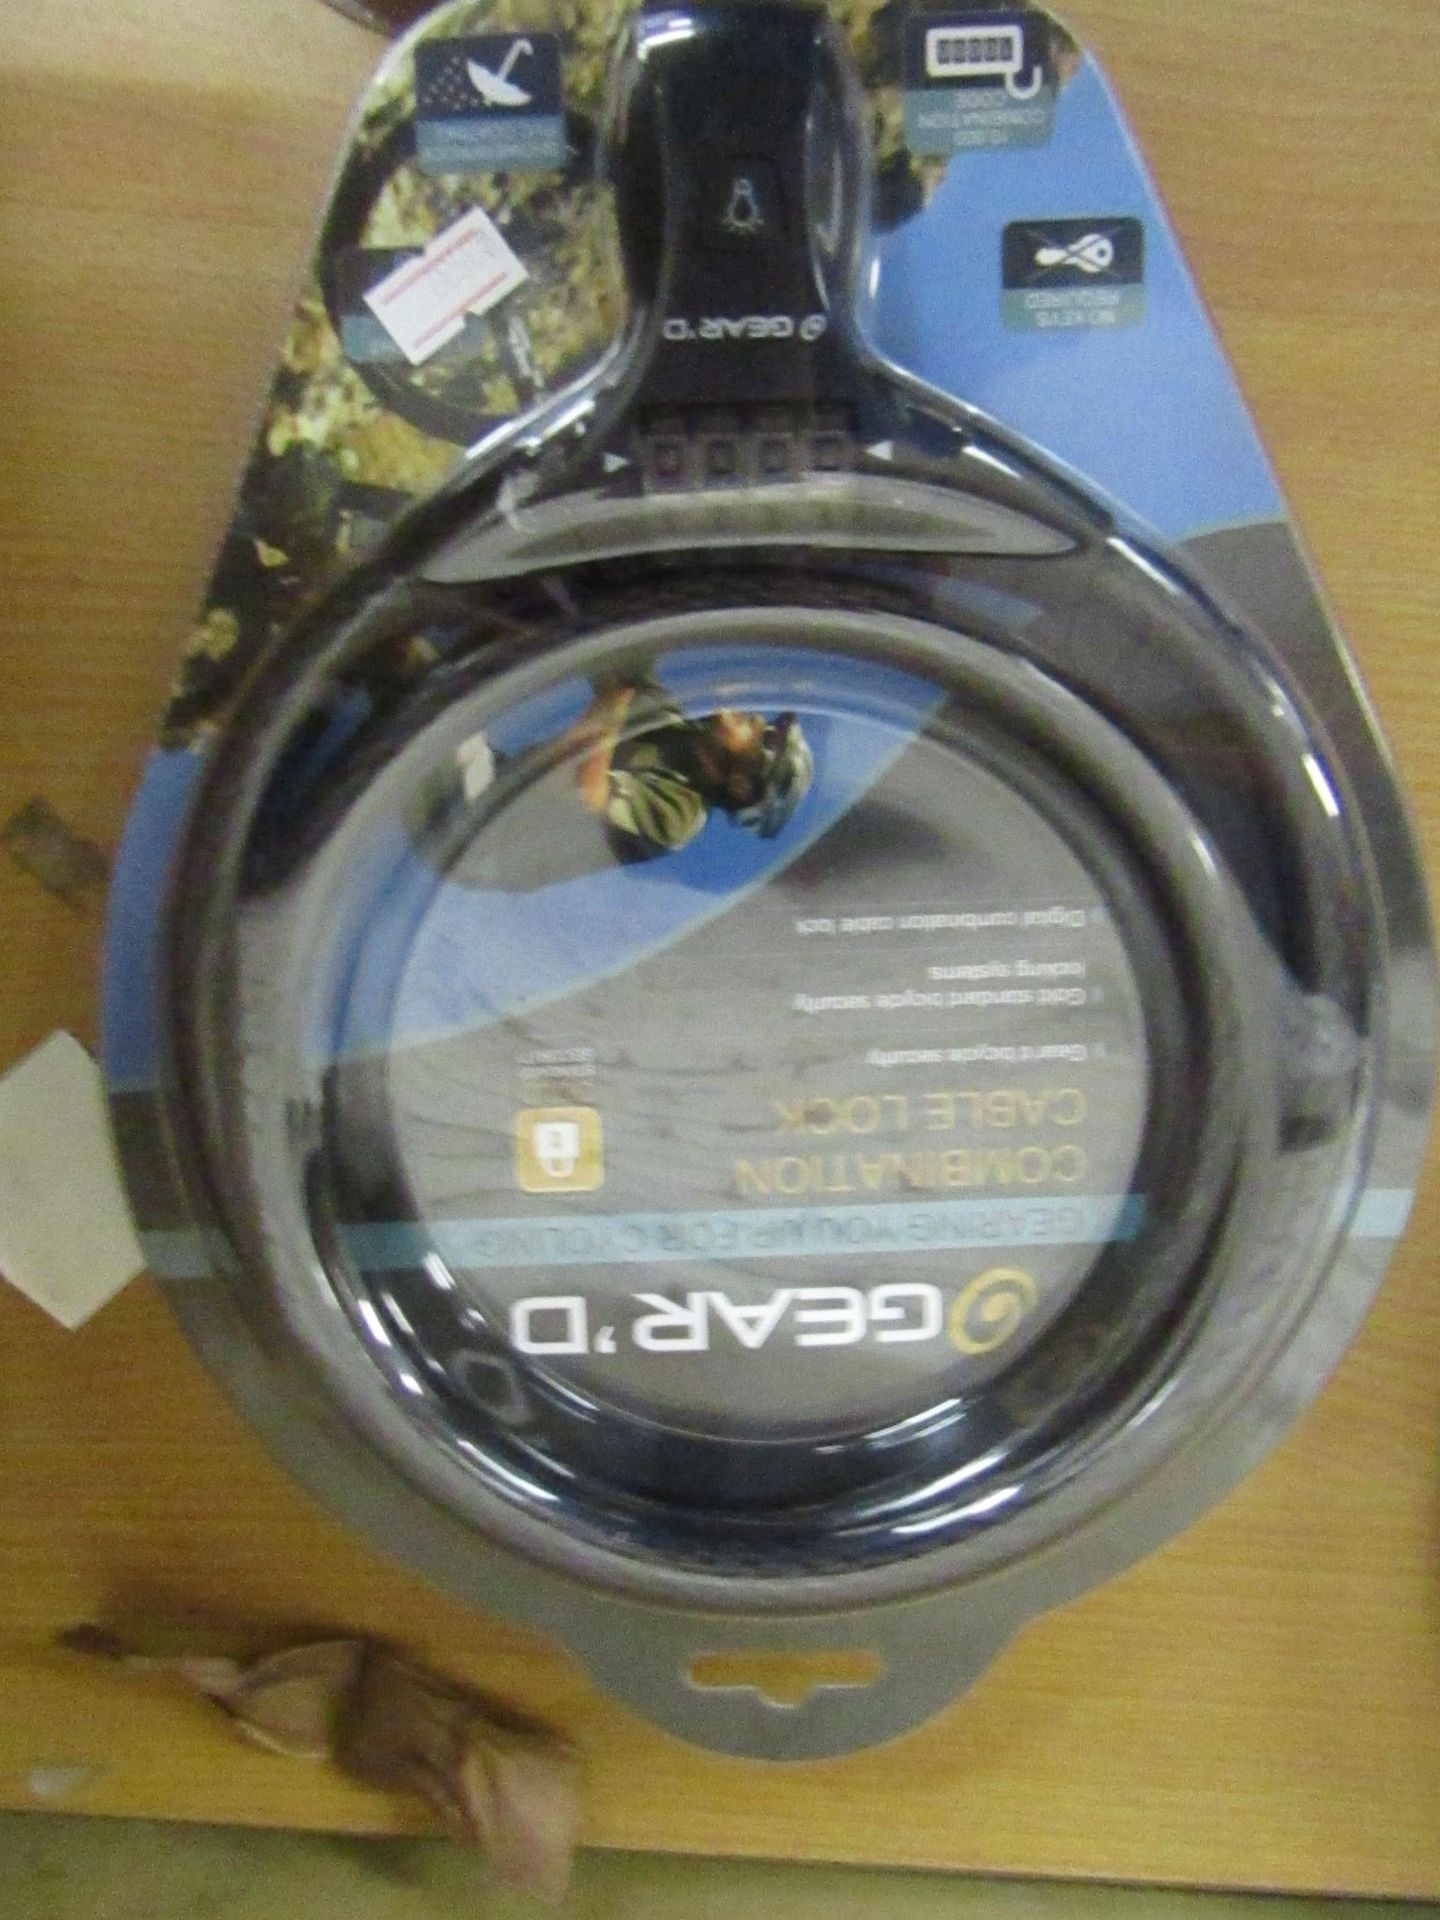 Lot 23 - 2 x Geared Combination Cable locks new & packaged